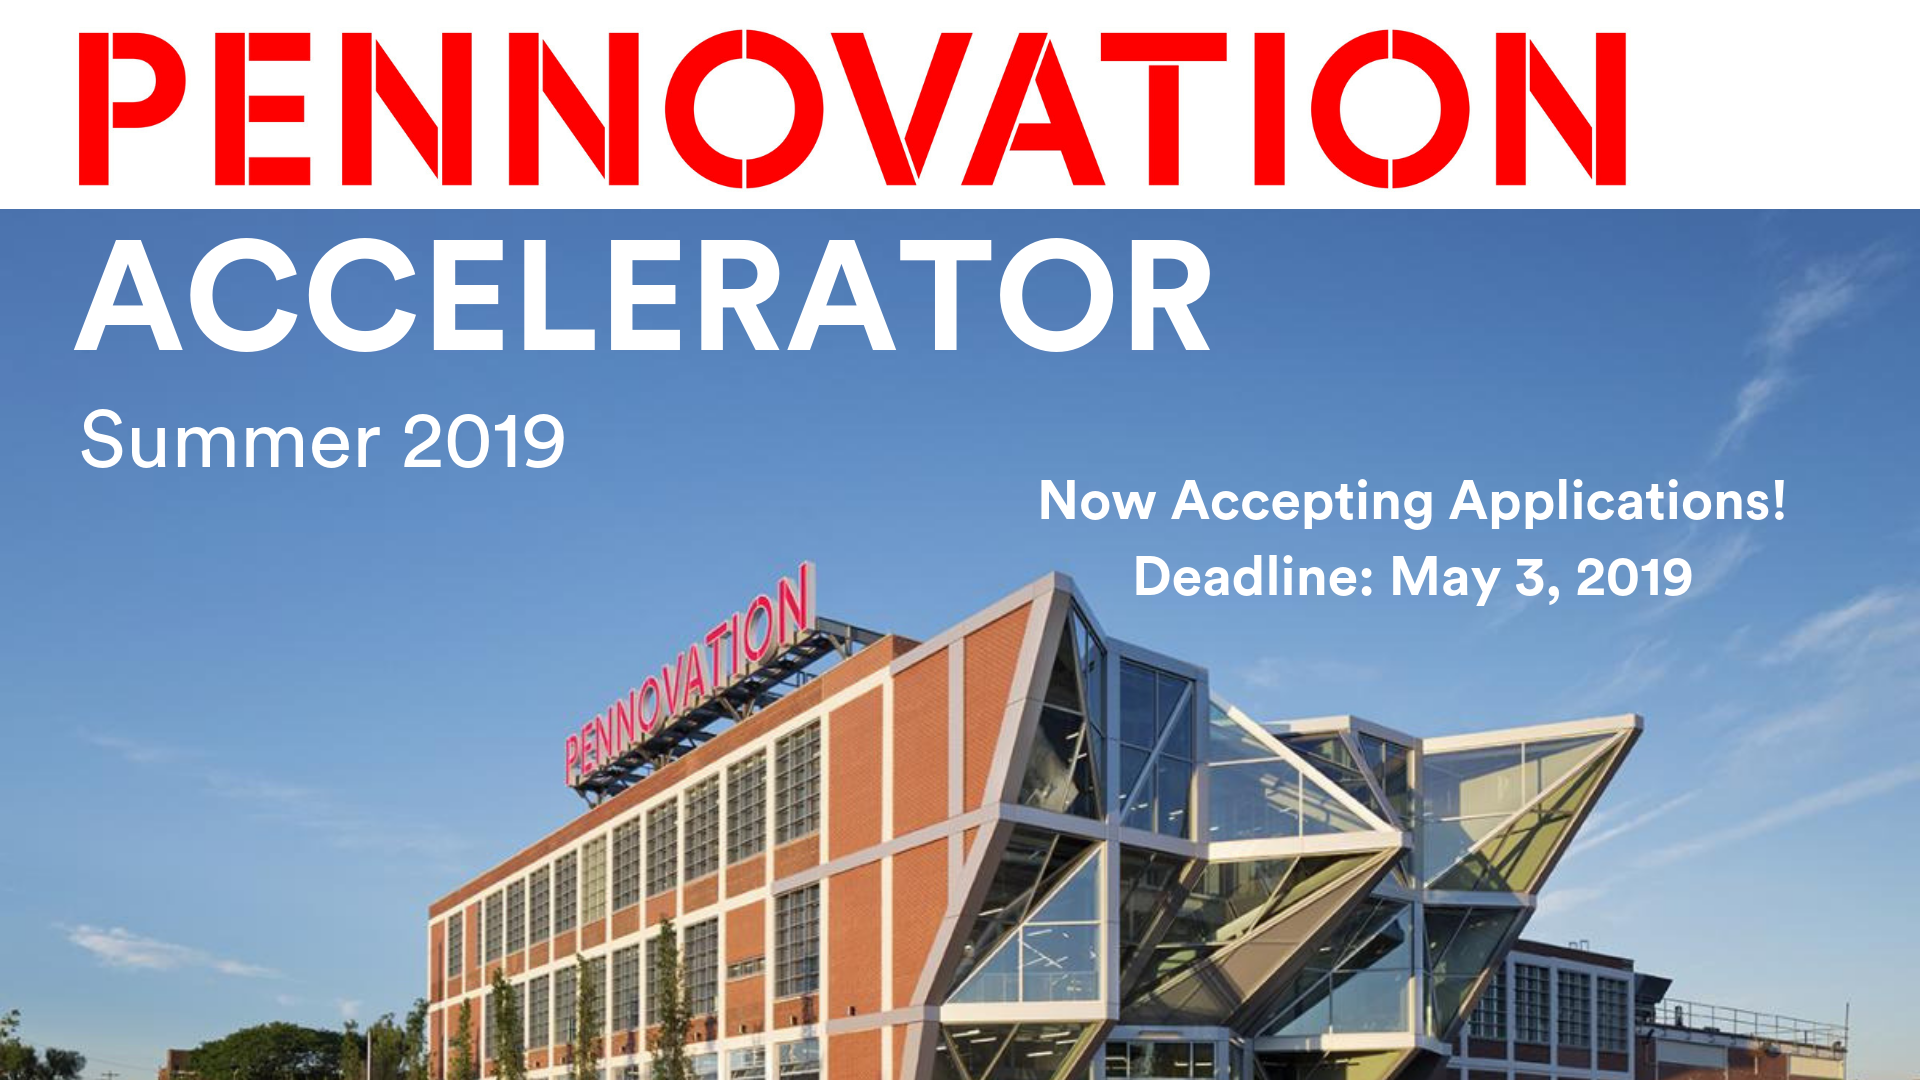 Pennovation Accelerator Summer 2019